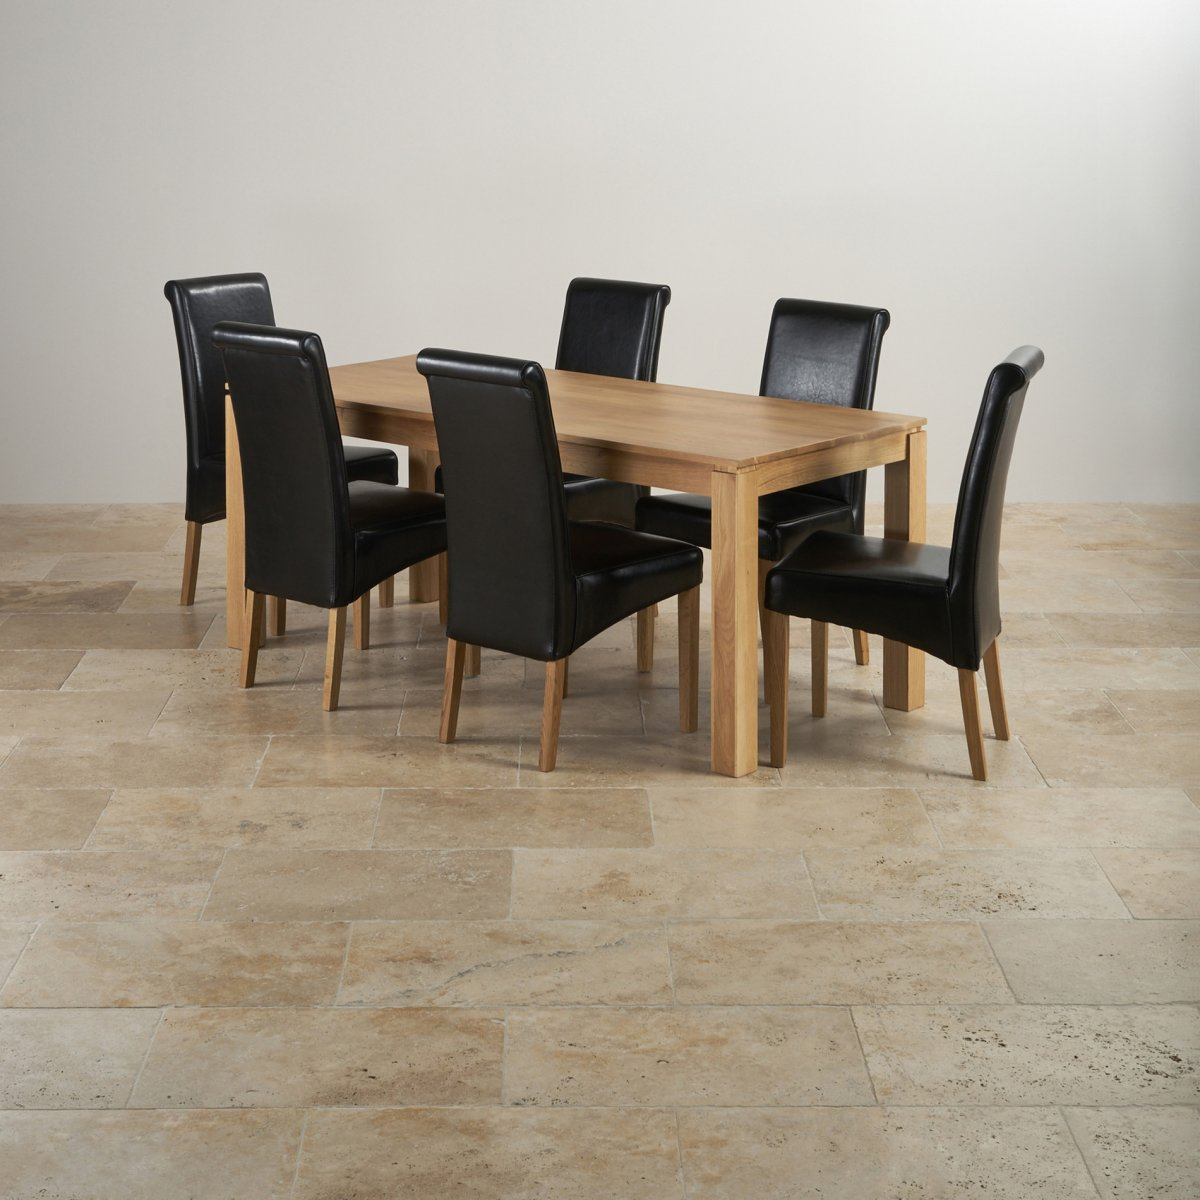 black dining sets with 6 chairs chicago bears chair galway set in natural oak table 43 leather